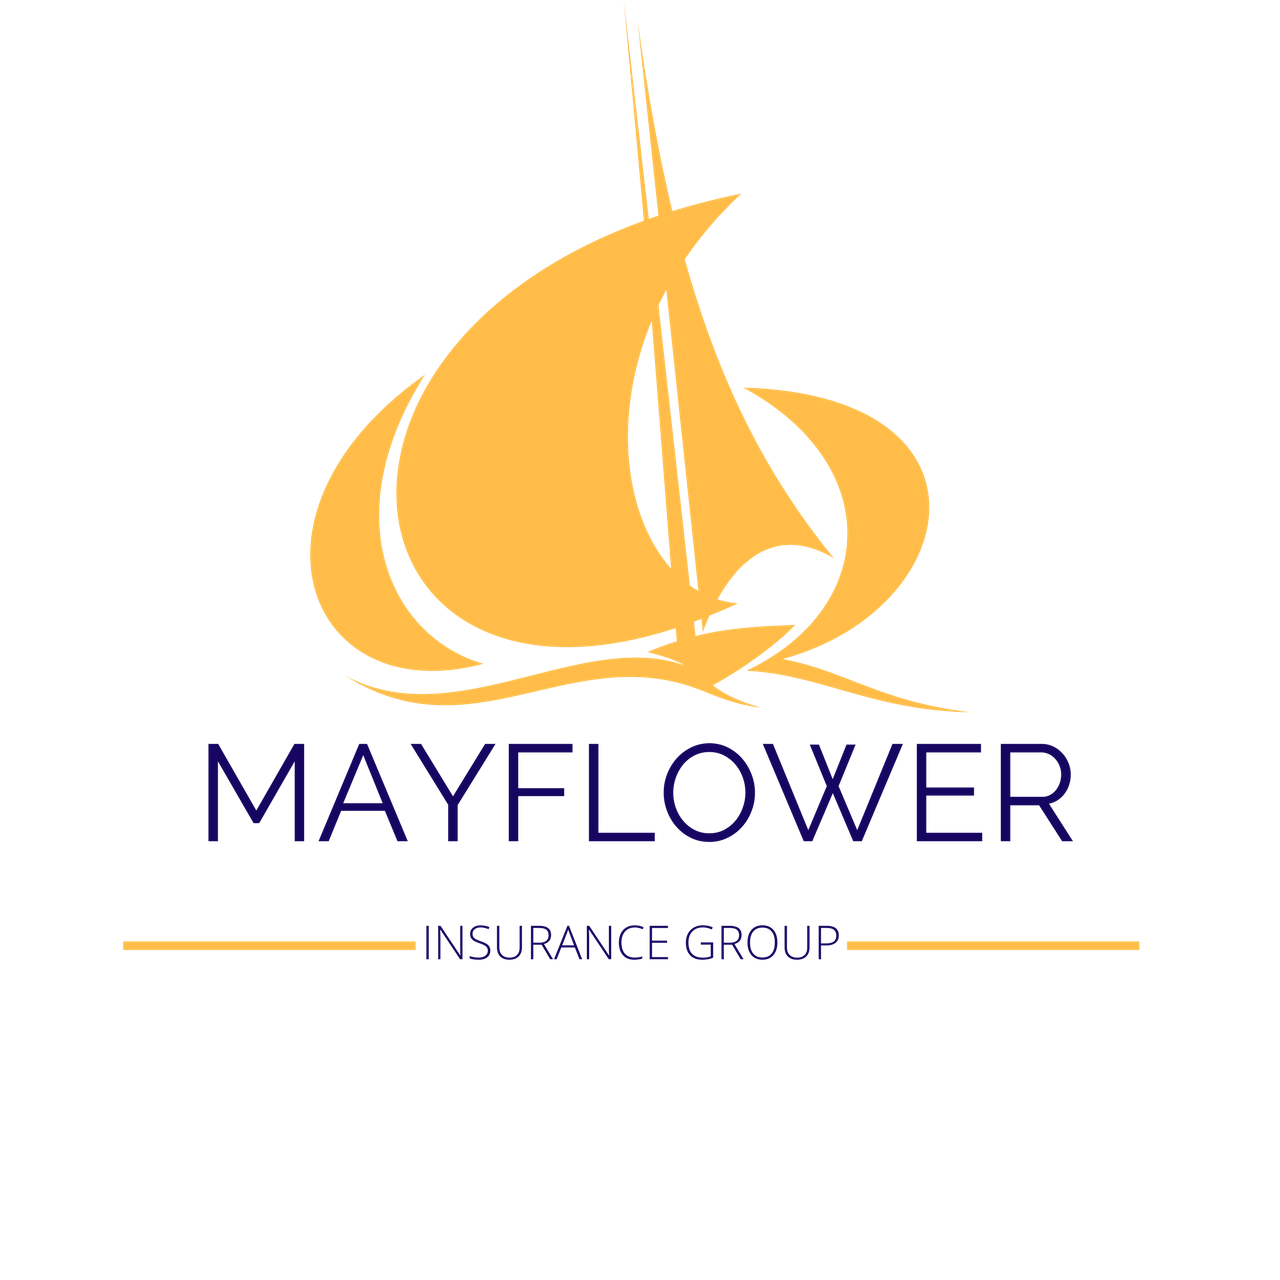 MAYFLOWER INSURANCE